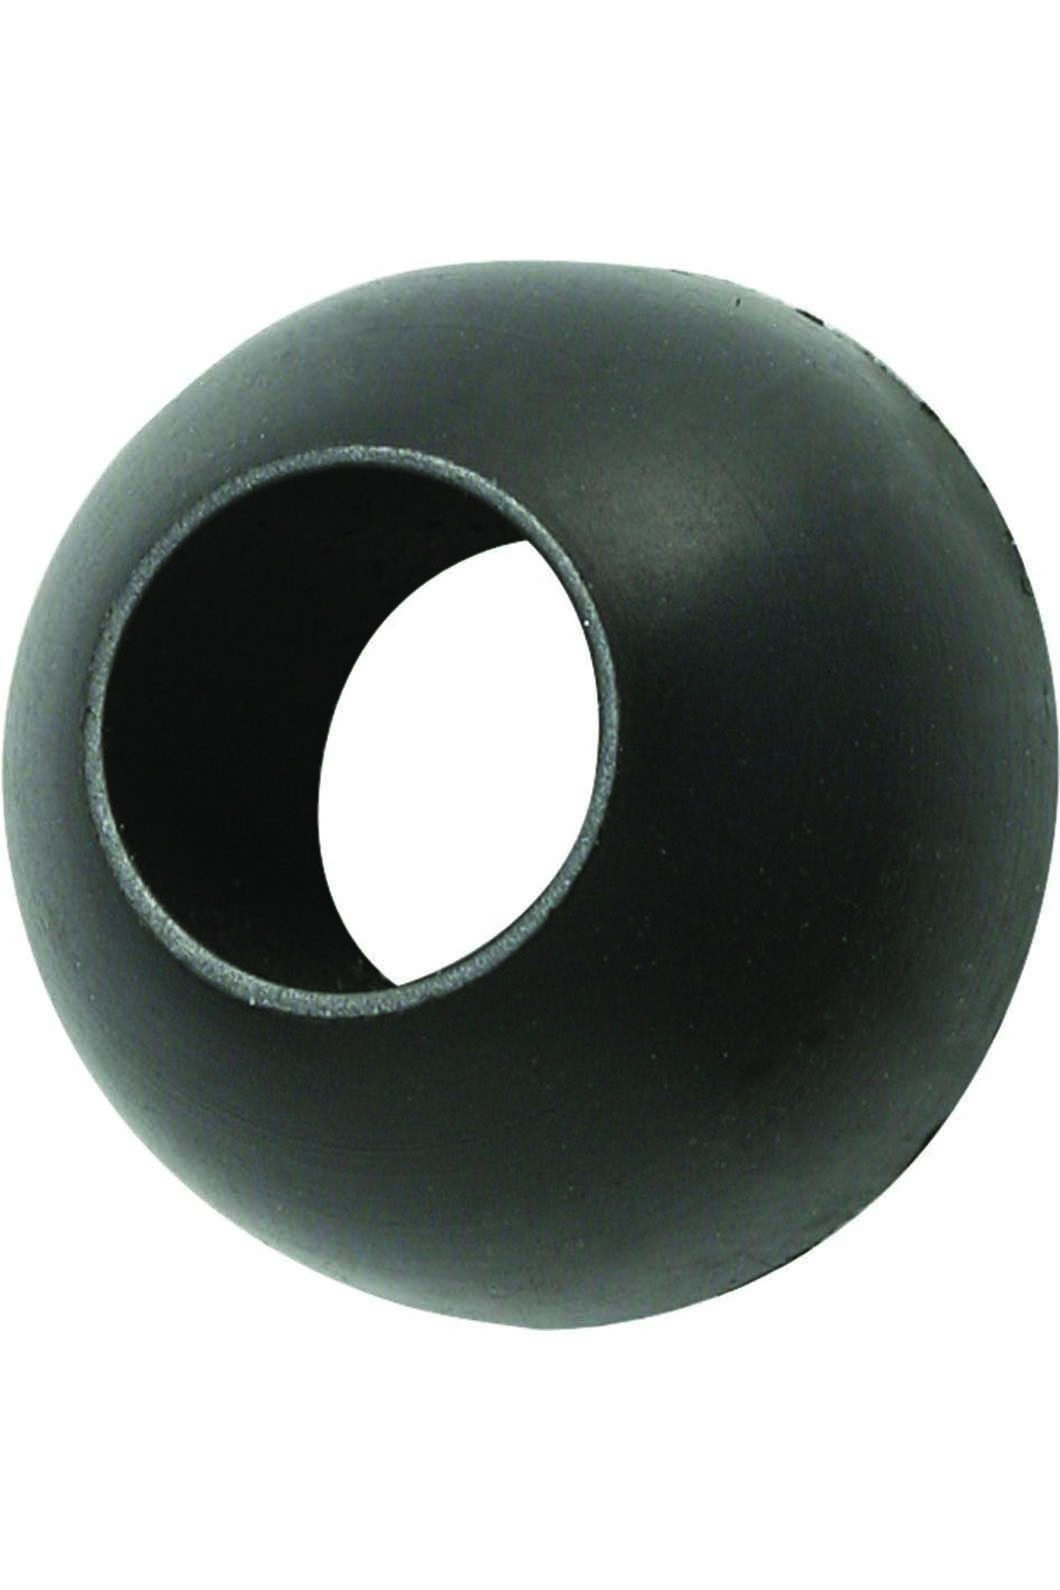 Primus POL Replacement Rubber Nose, None, hi-res